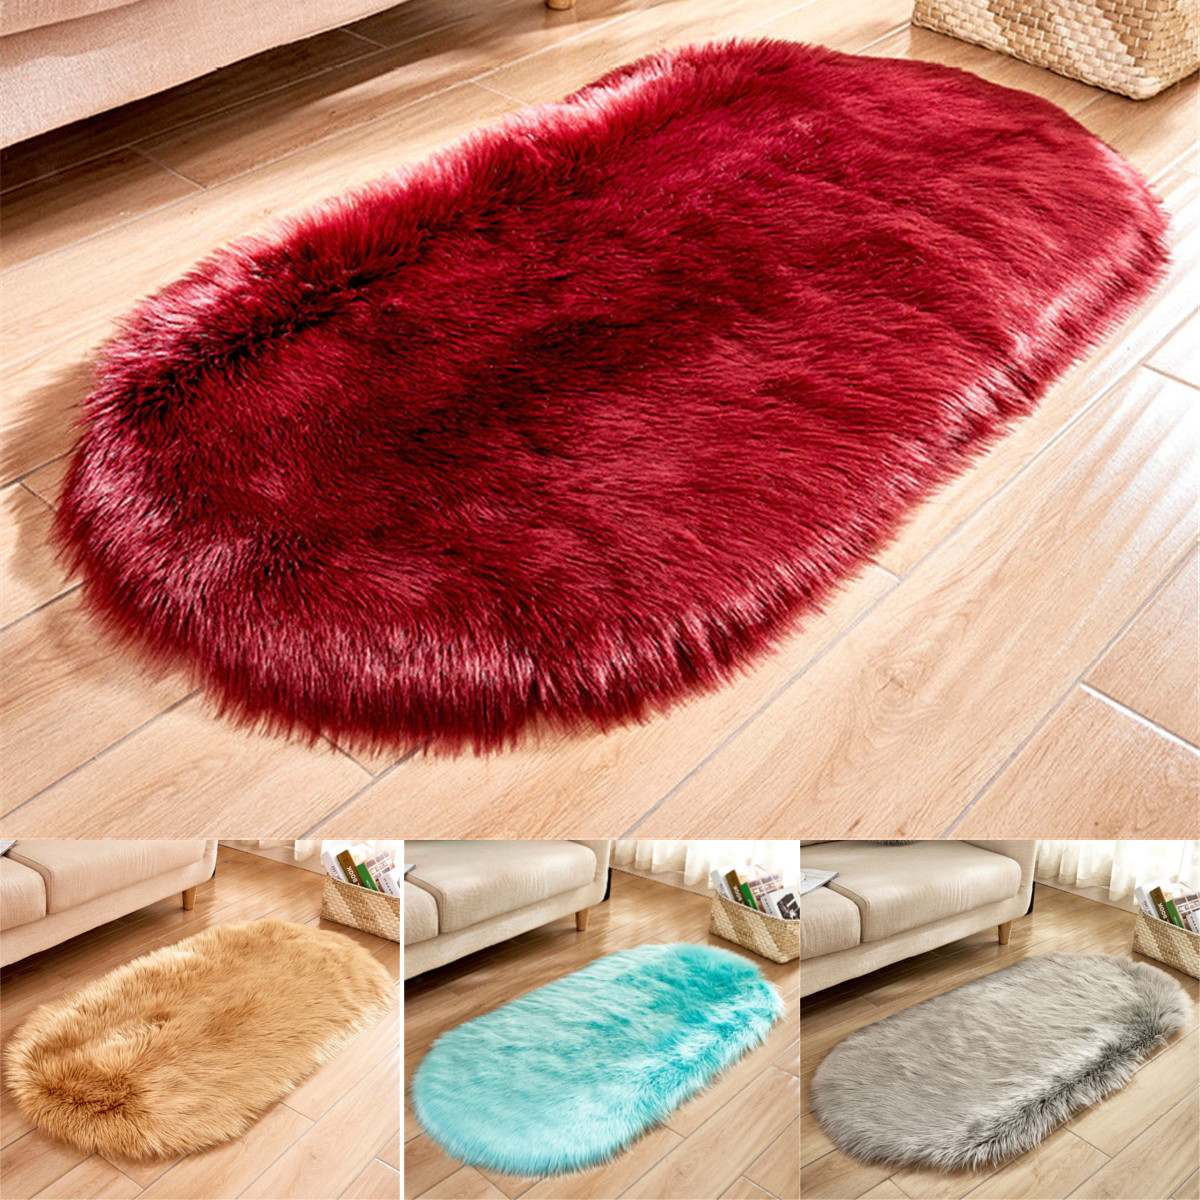 120x50cm Non Slip Oval Plush Area Rug 7 Colors Living Room Carpet Home Hotel Bedroom Floor Mat Pad Hallway Rugs Decoration